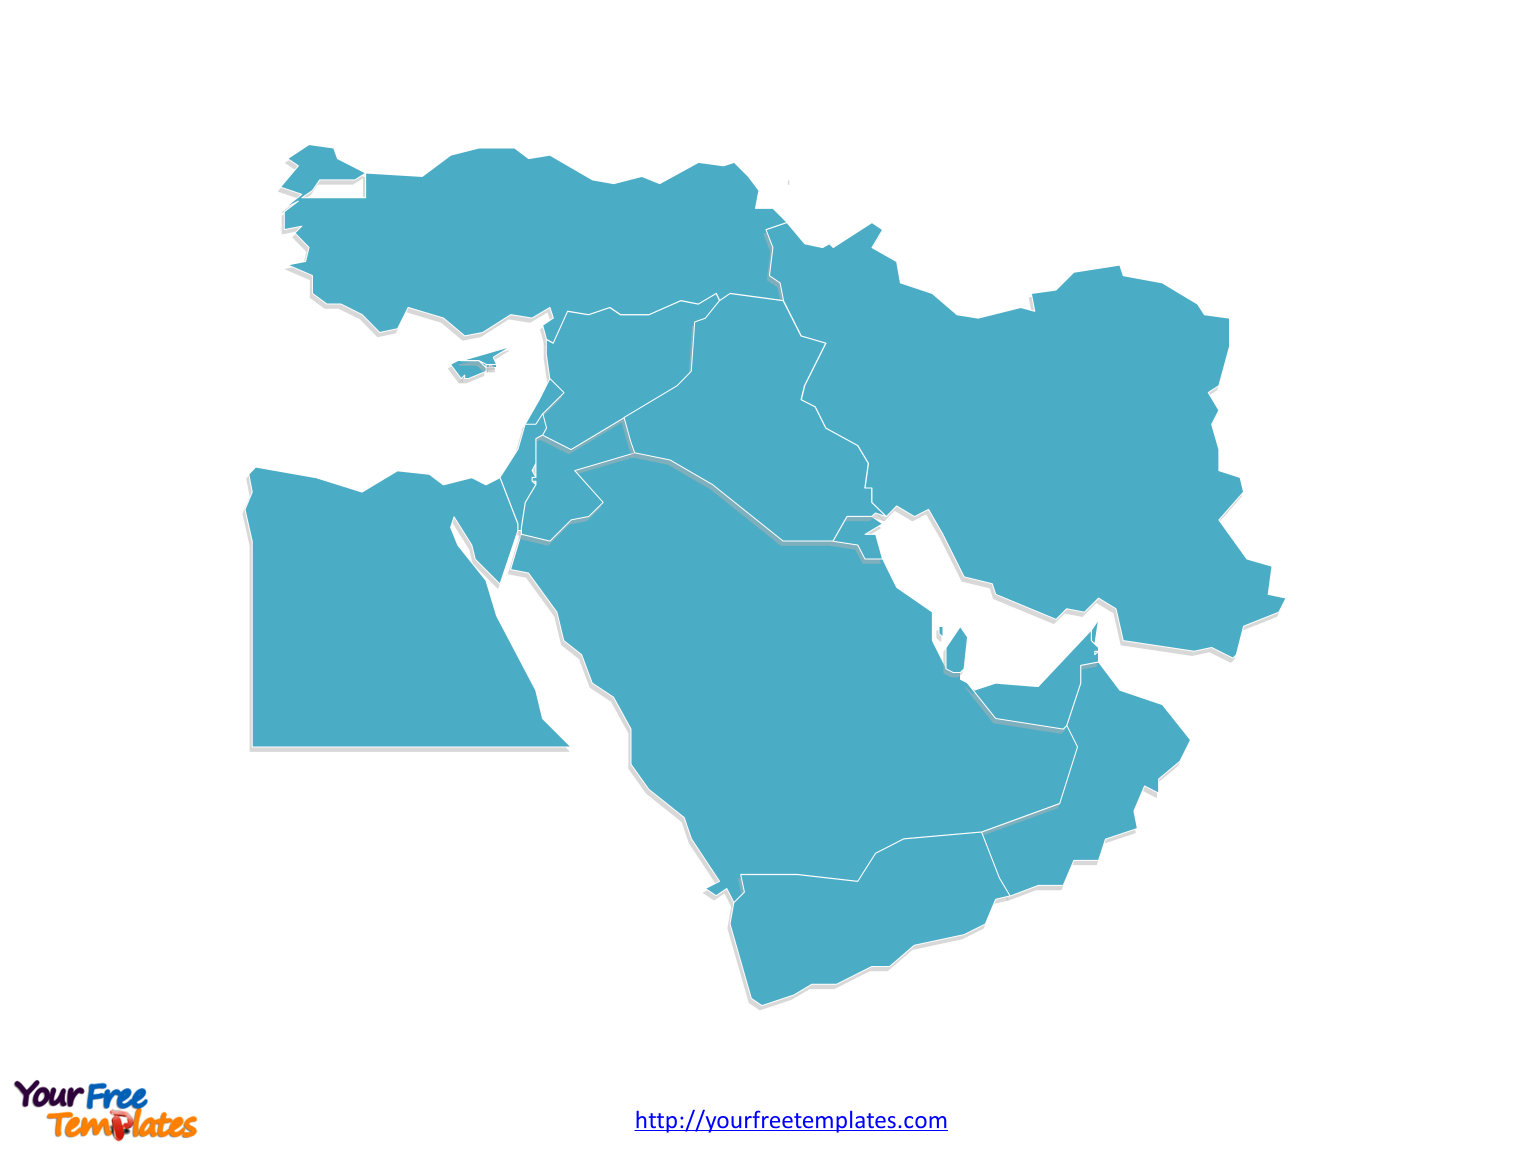 Blank Map of Middle East with countries